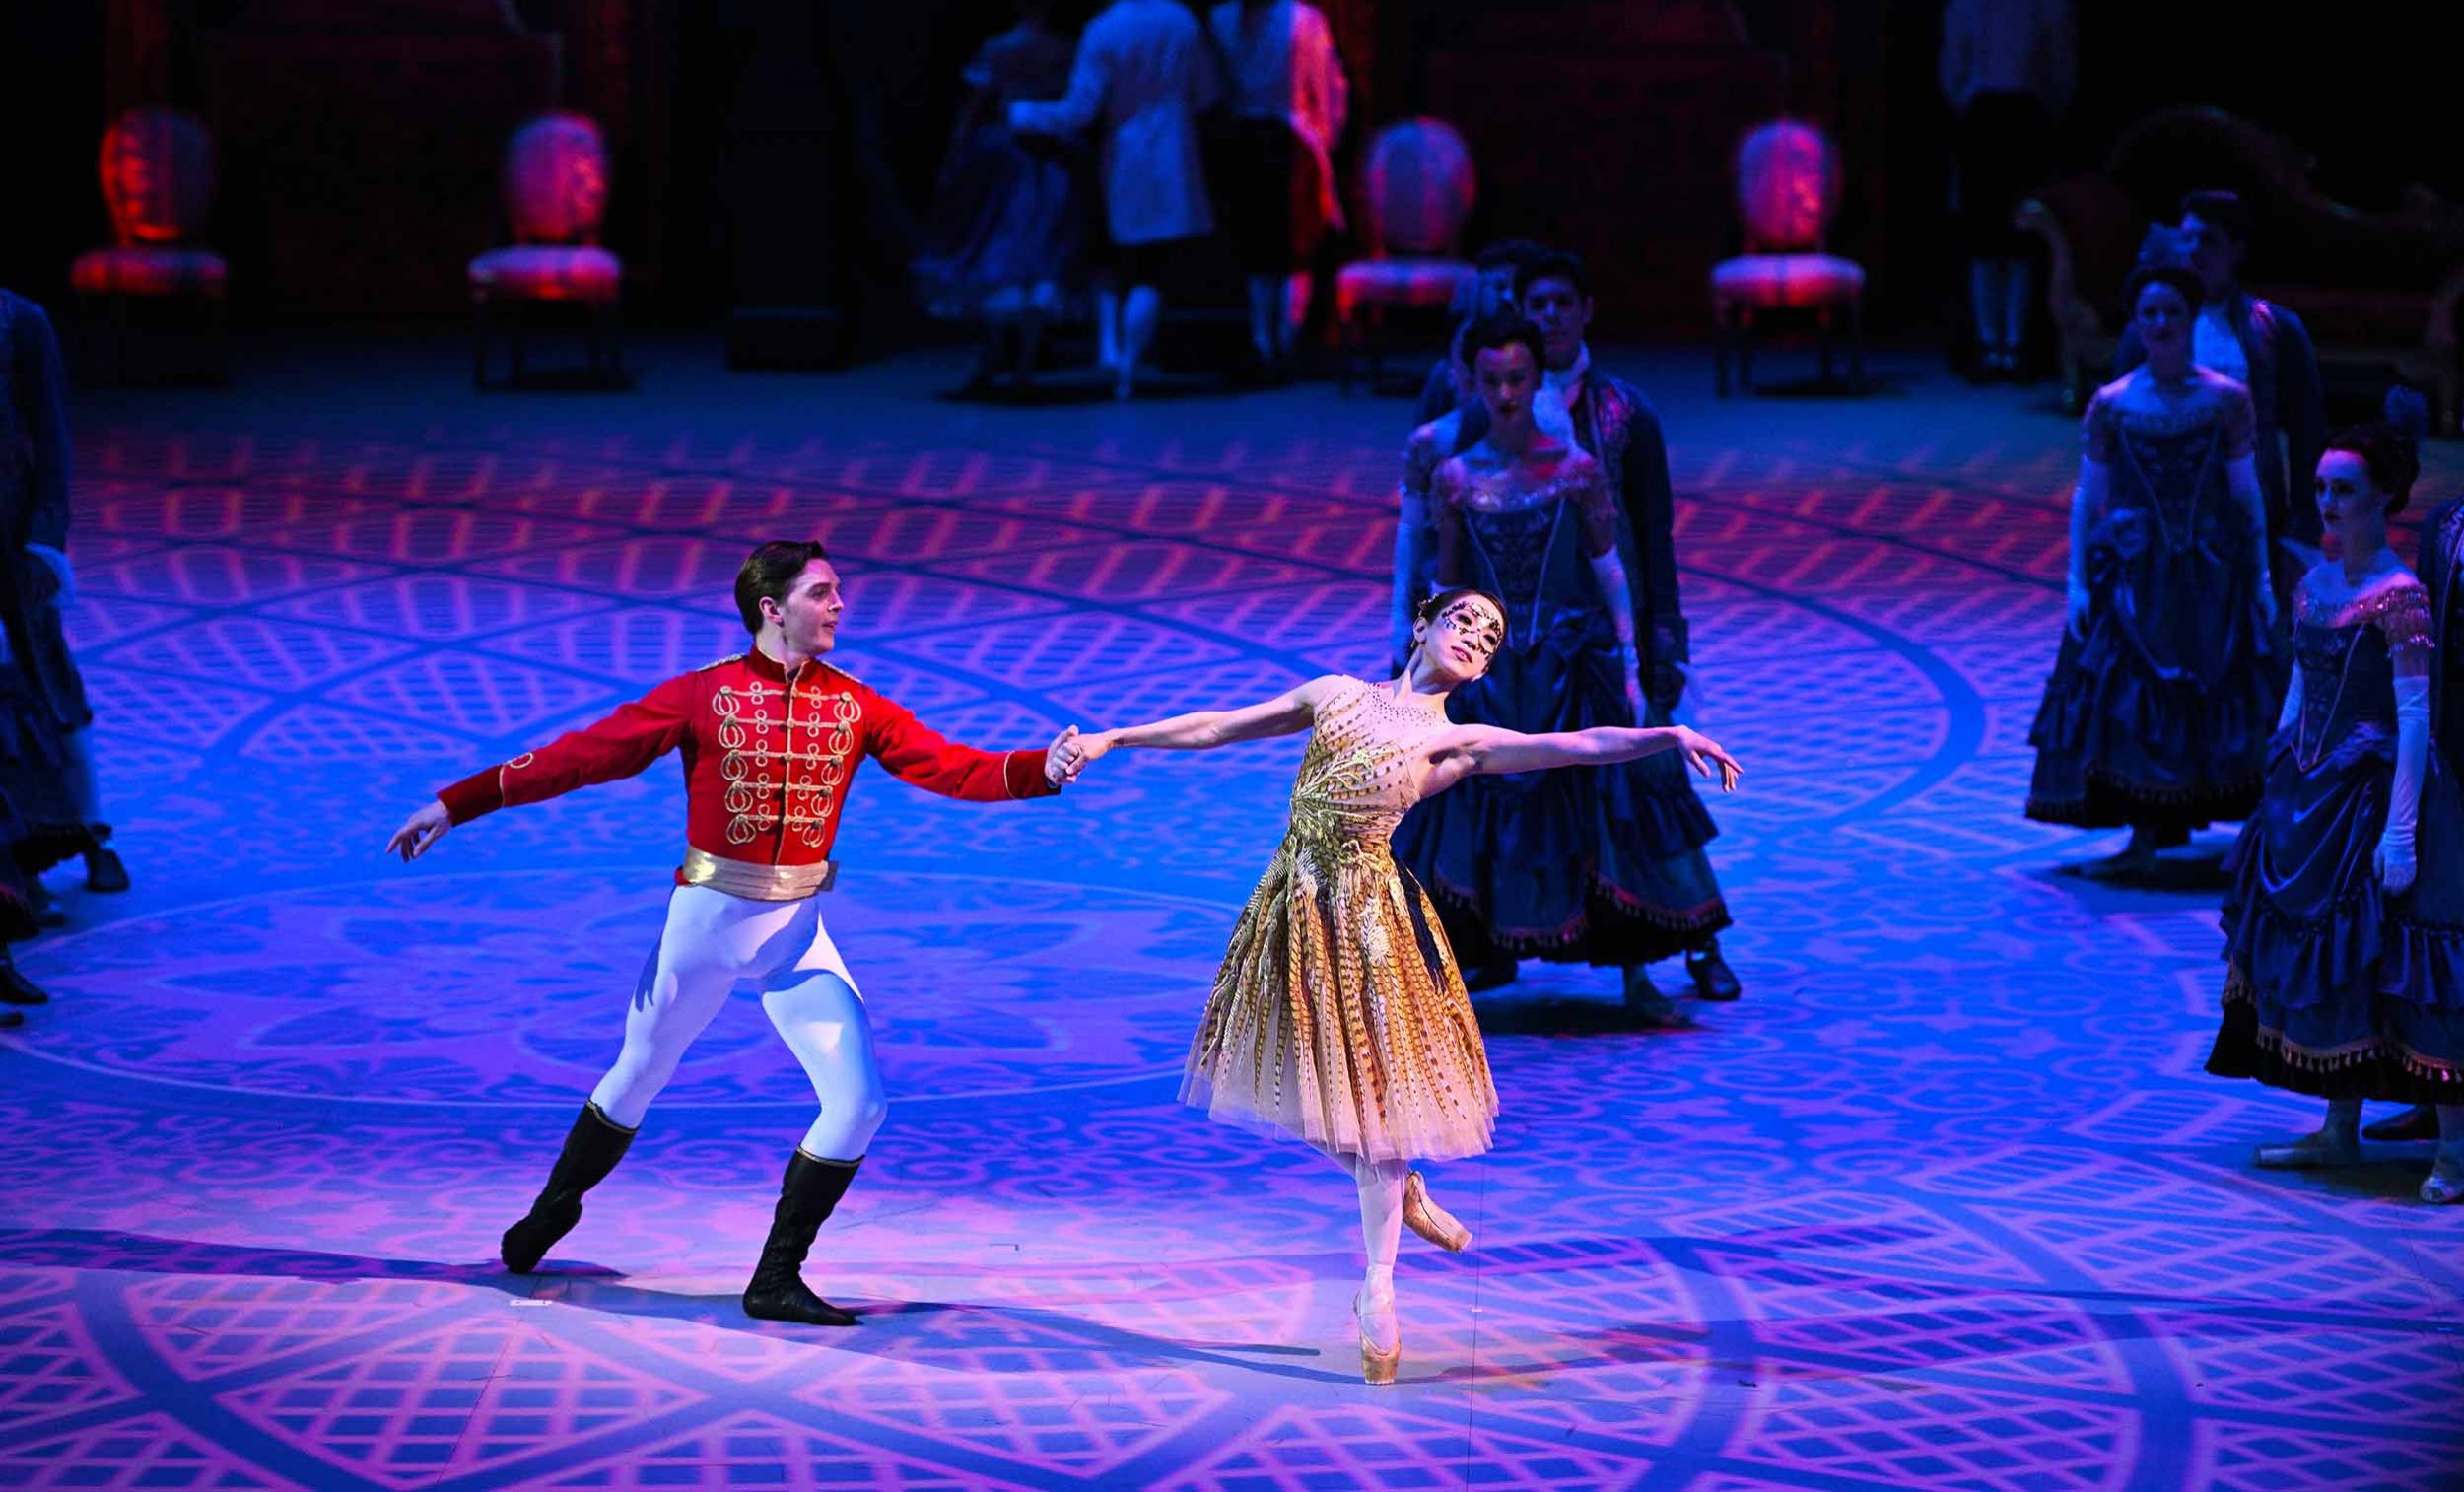 Joseph-Caley-and-Erina-Takahashi-in-Cinderella-in-the-round-(c)-Laurent-Liotardo